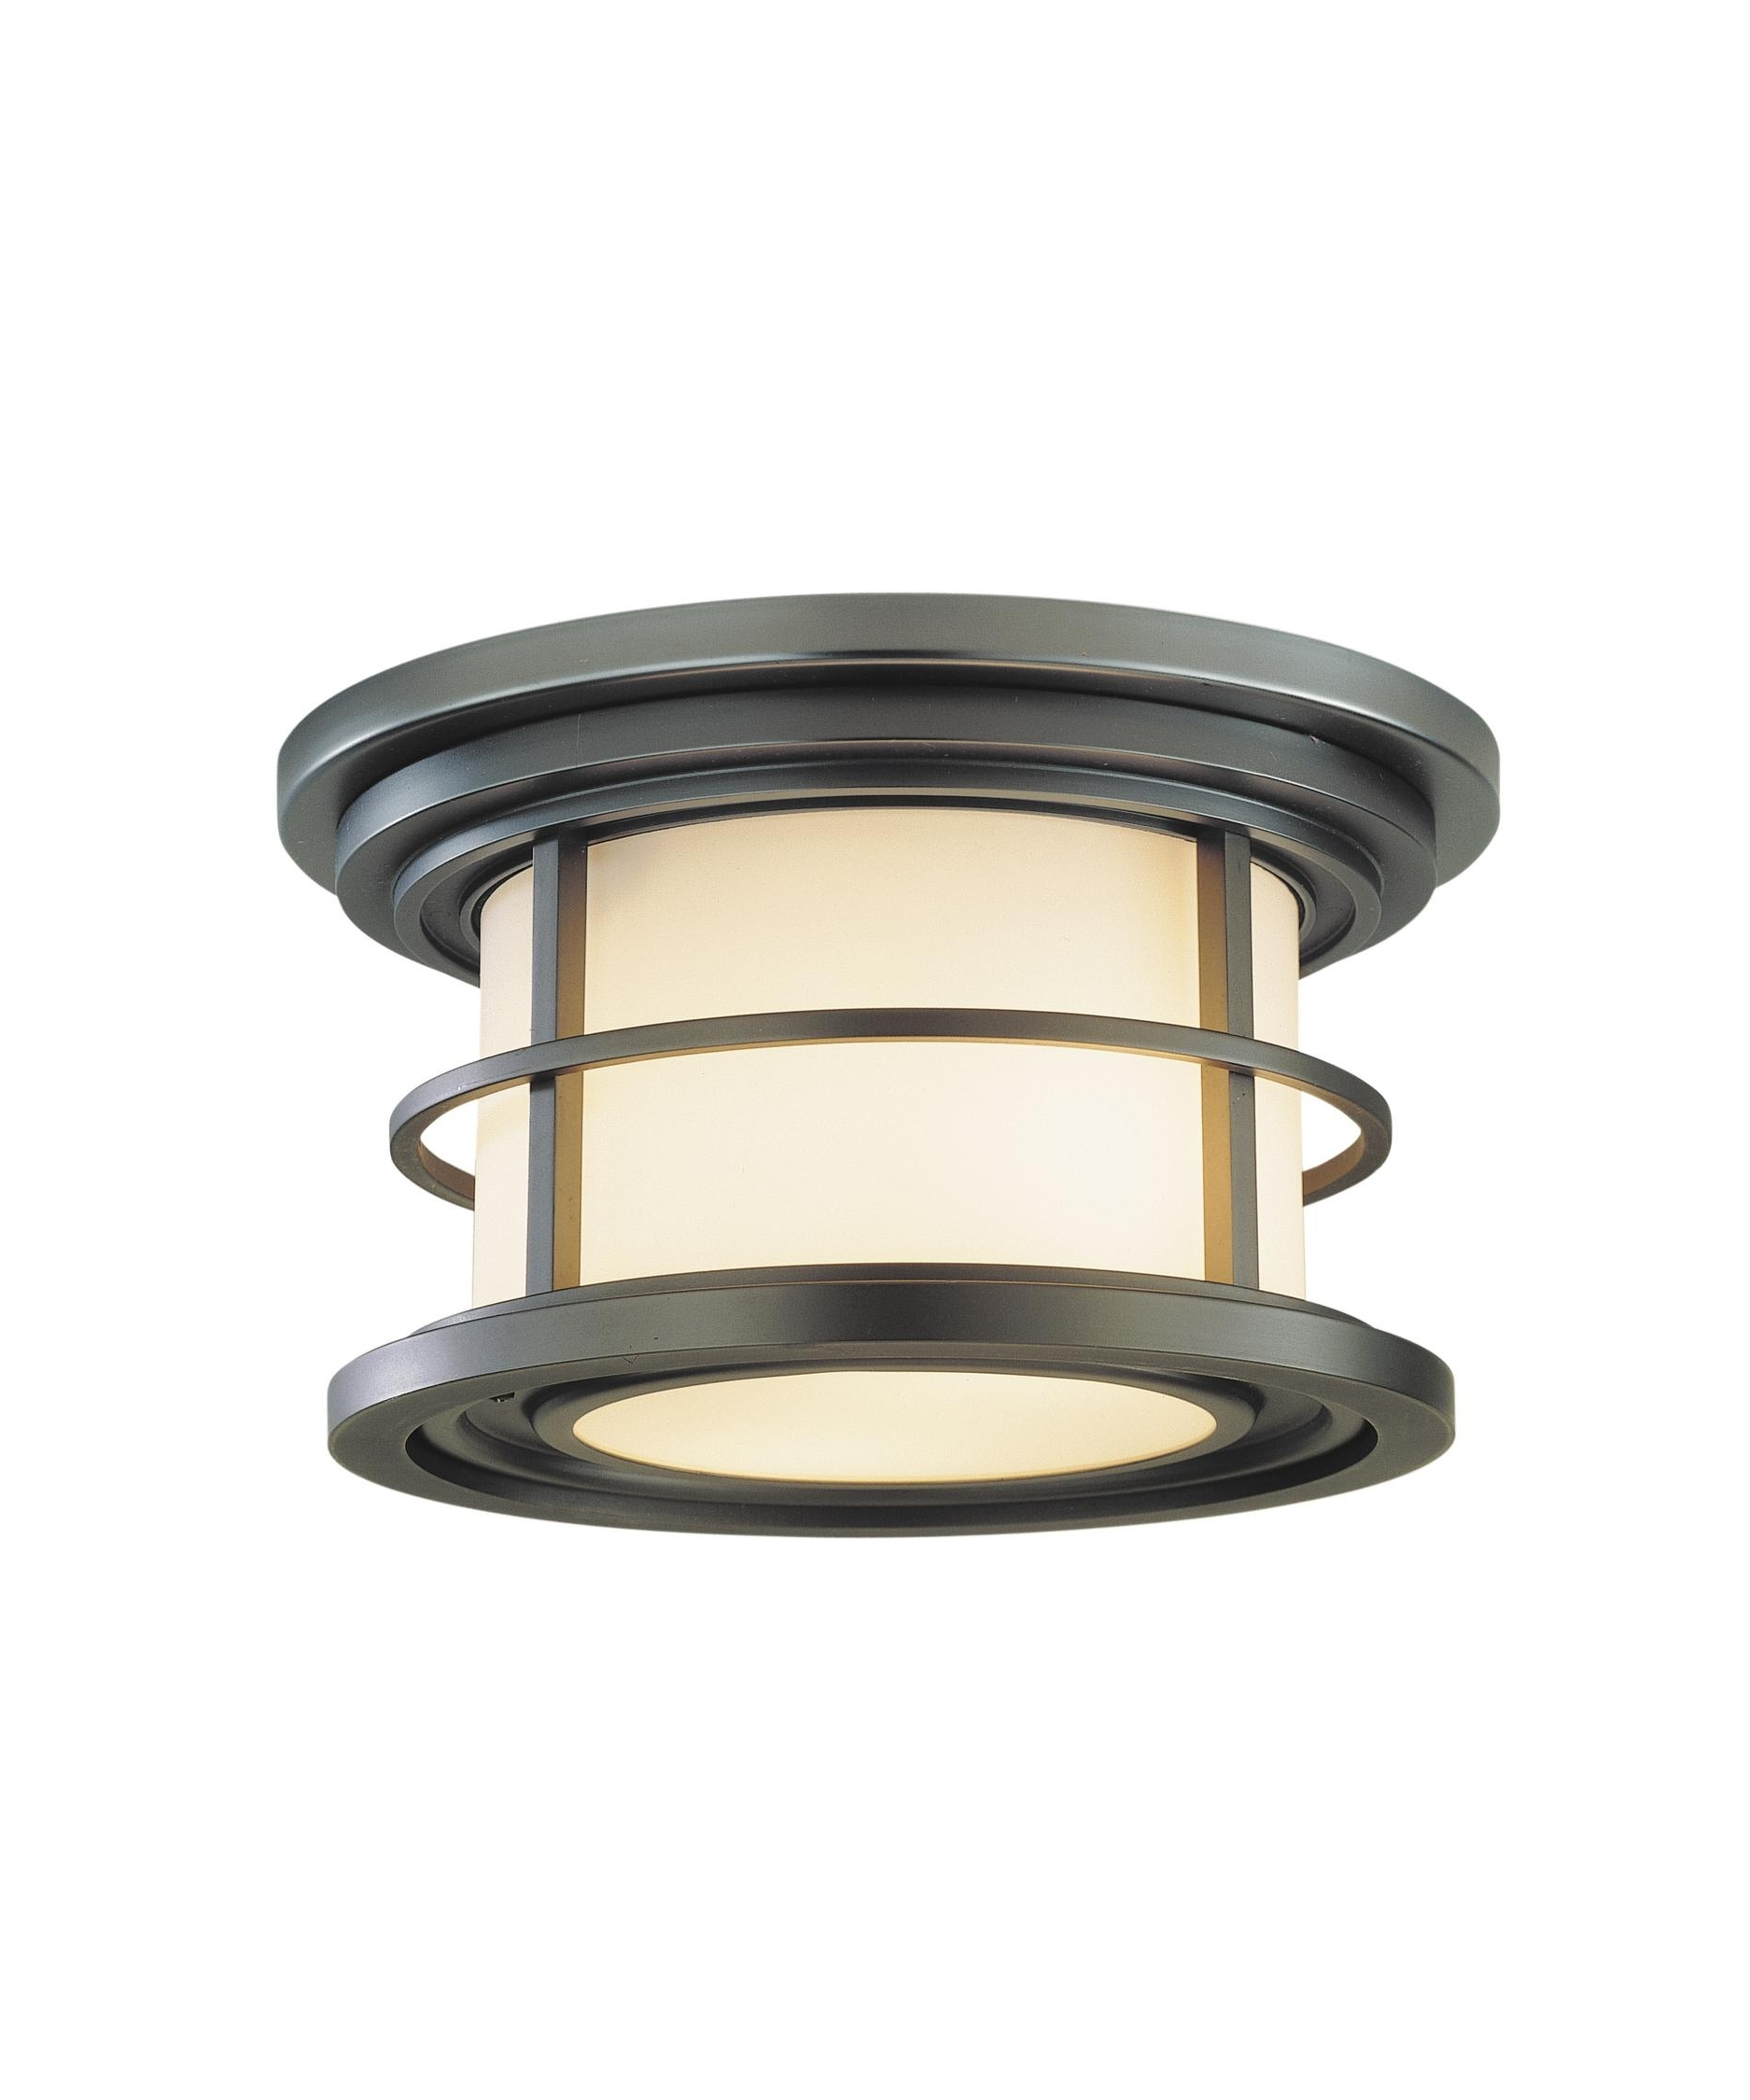 Commercial Outdoor Ceiling Lighting Fixtures Pertaining To Trendy Murray Feiss Ol2213 Lighthouse 10 Inch Wide 2 Light Outdoor Flush (Gallery 4 of 20)